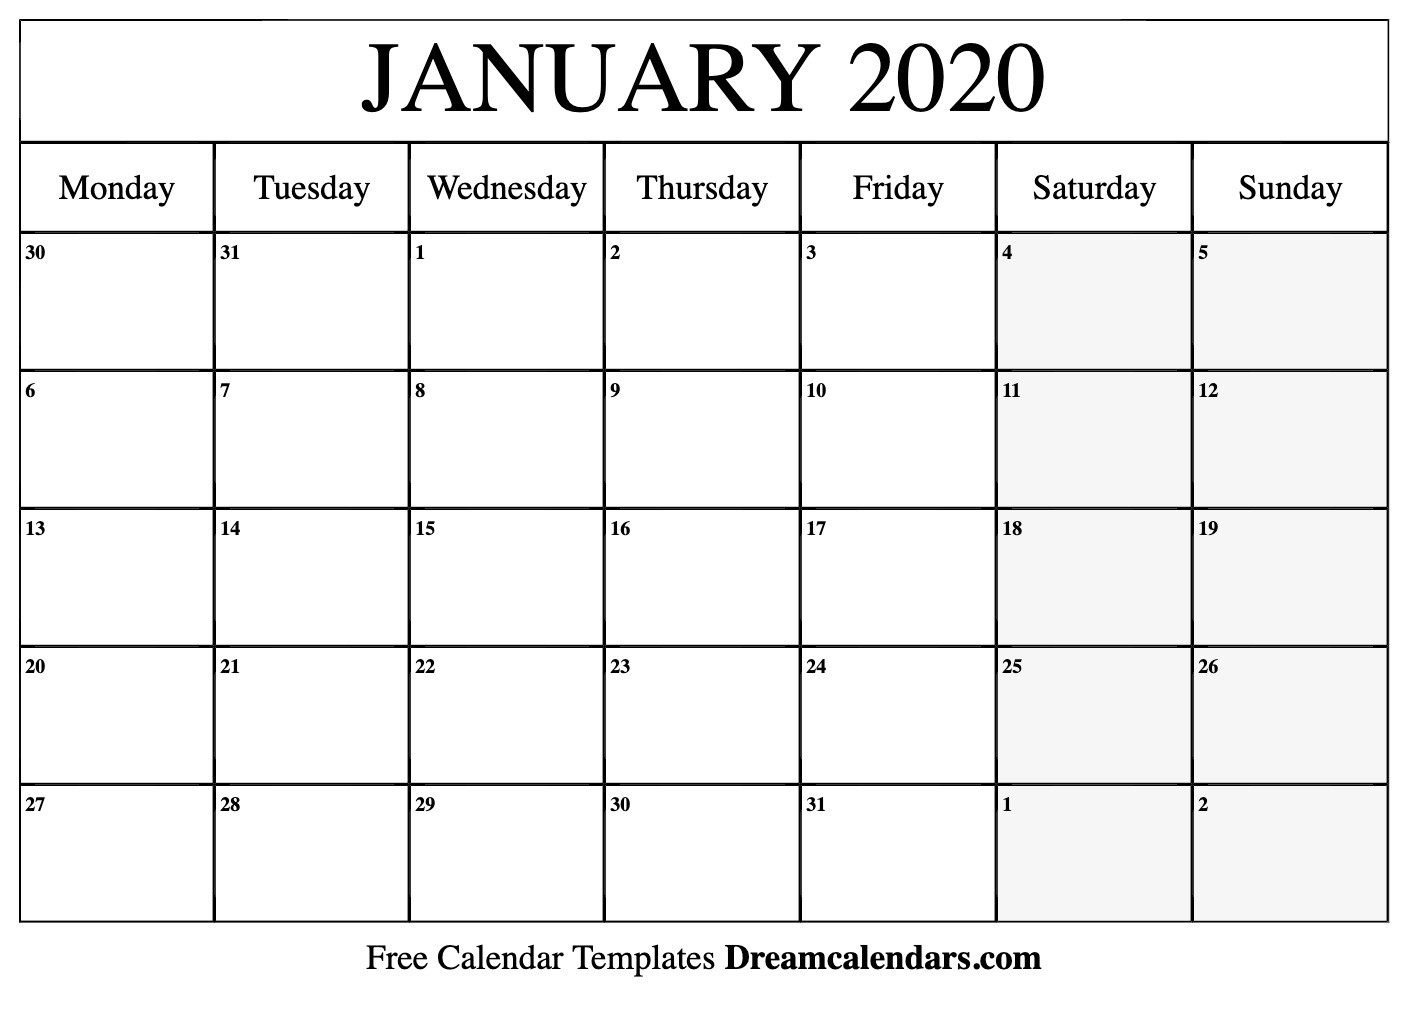 Printable January 2020 Calendar-Printable Calendar For January 2020